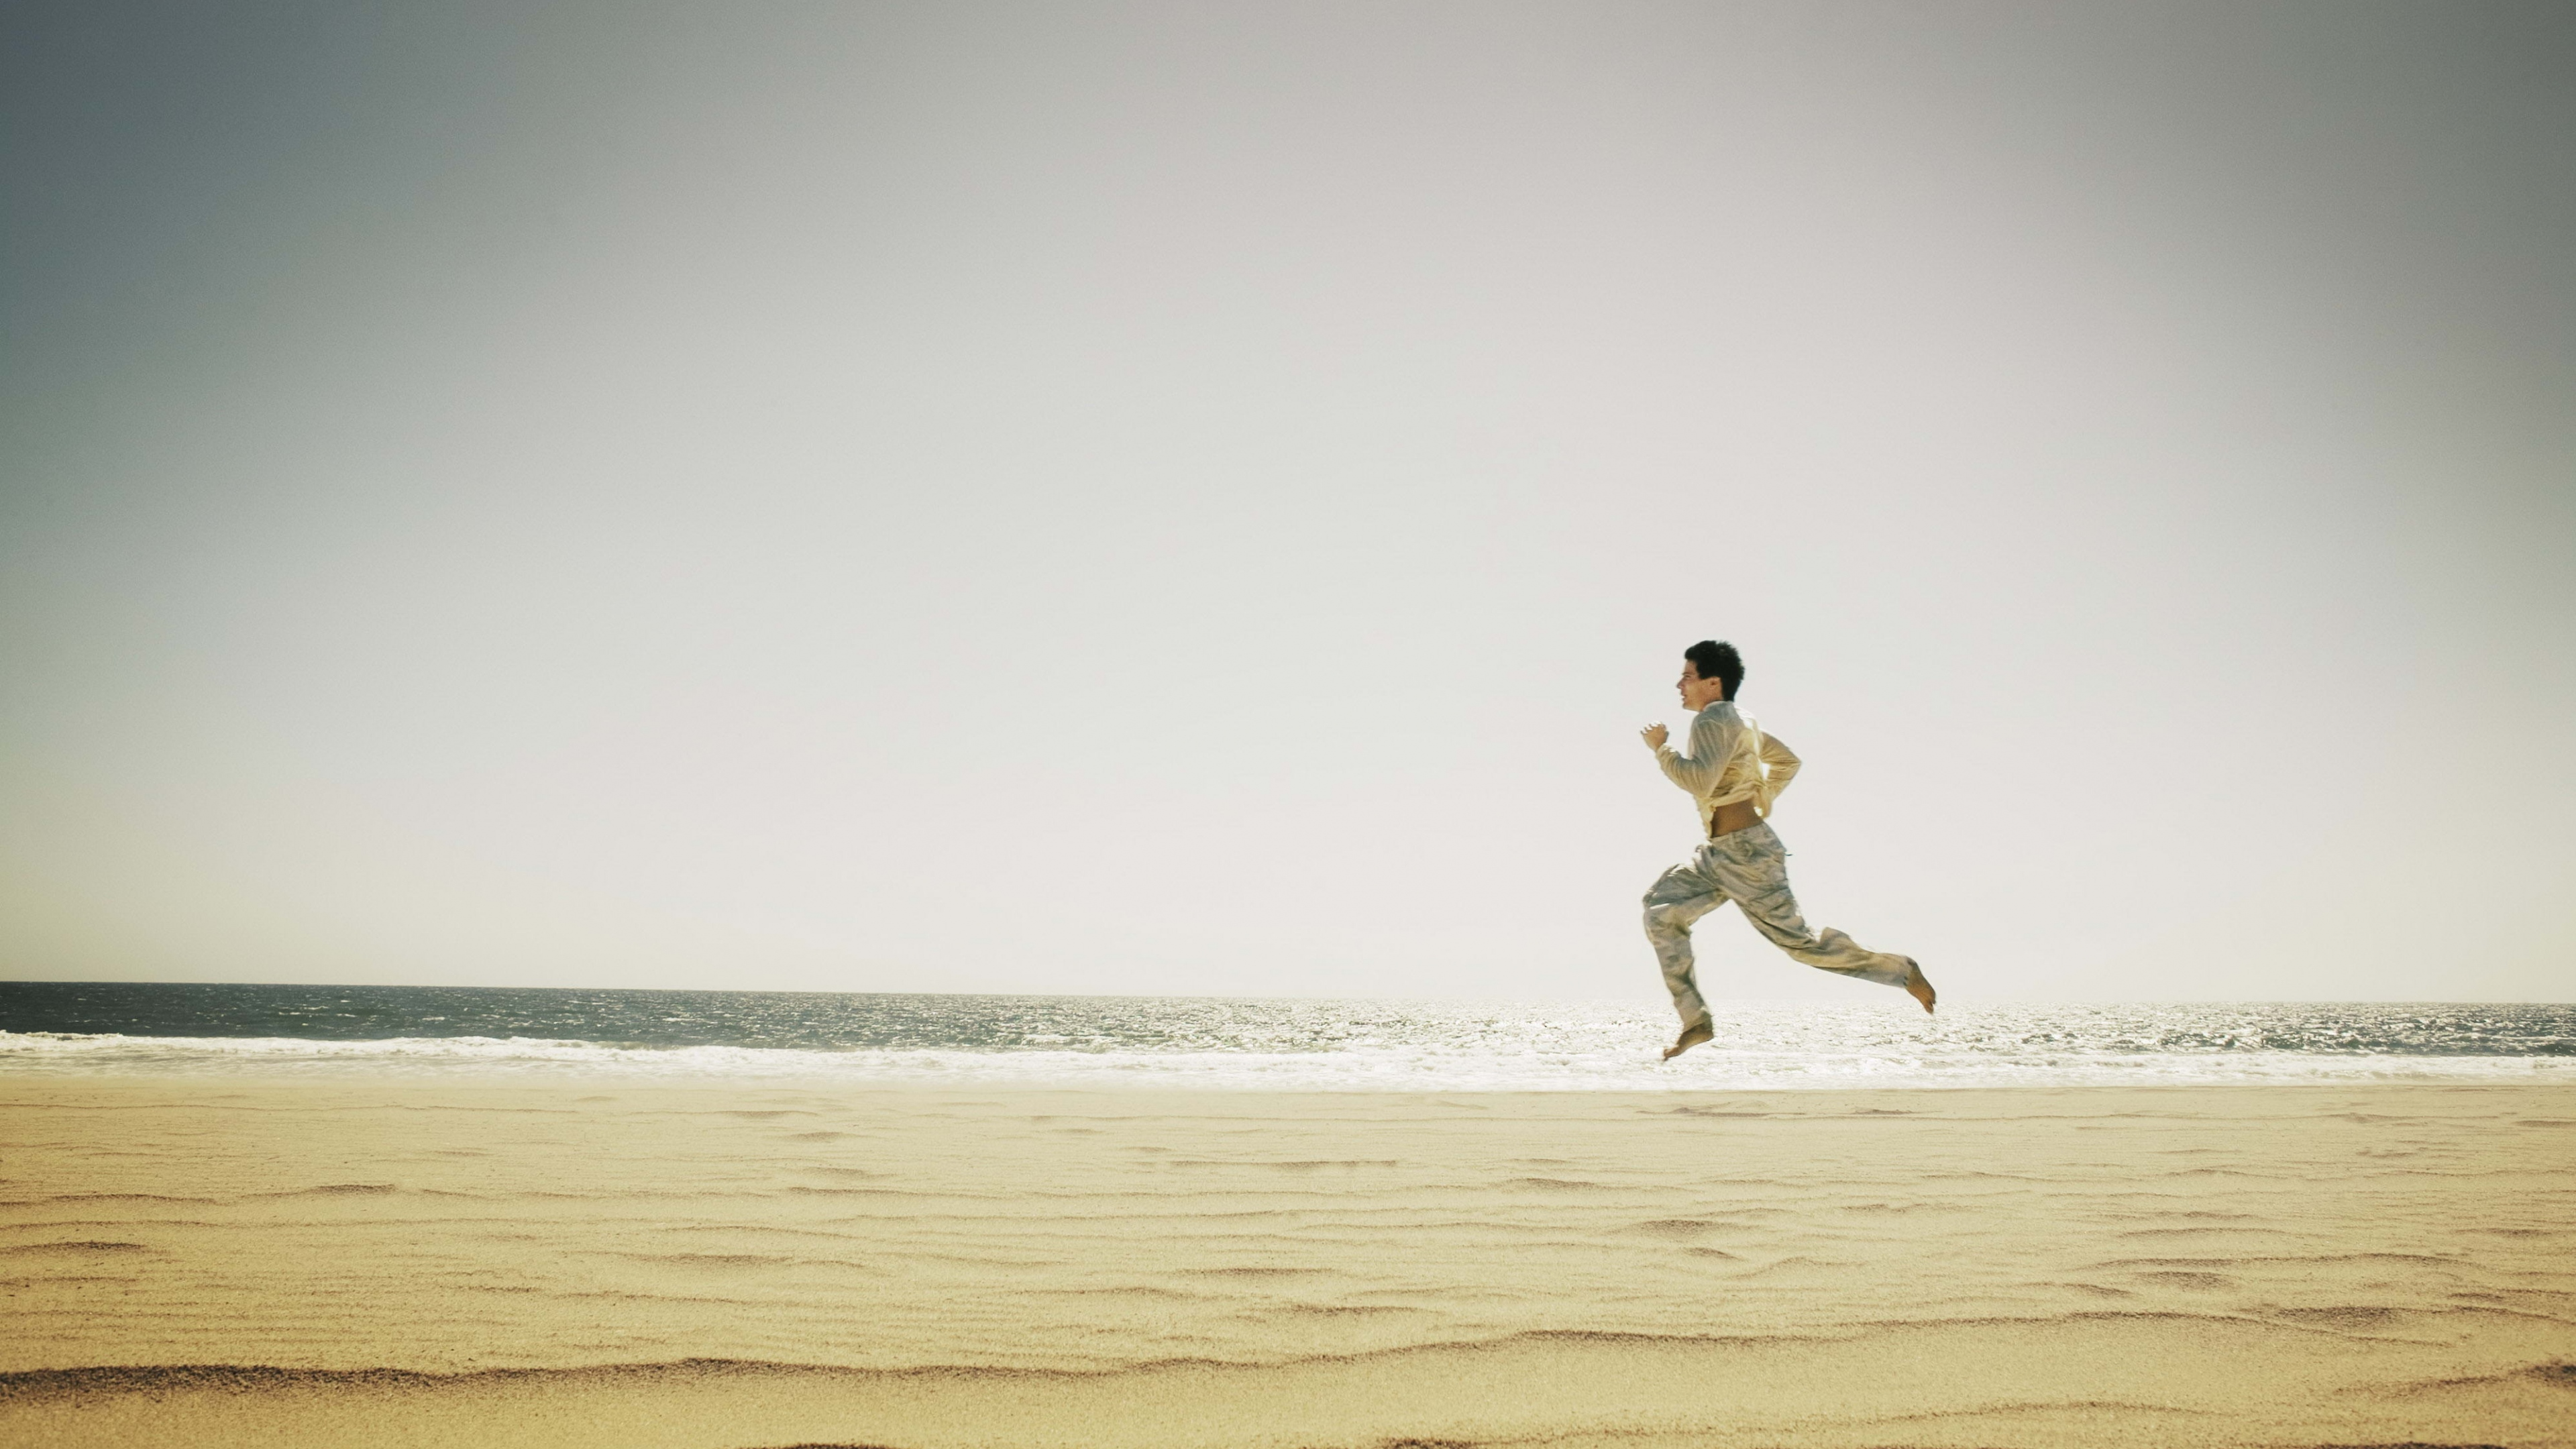 beach man running widescreen hd wallpaper 60569